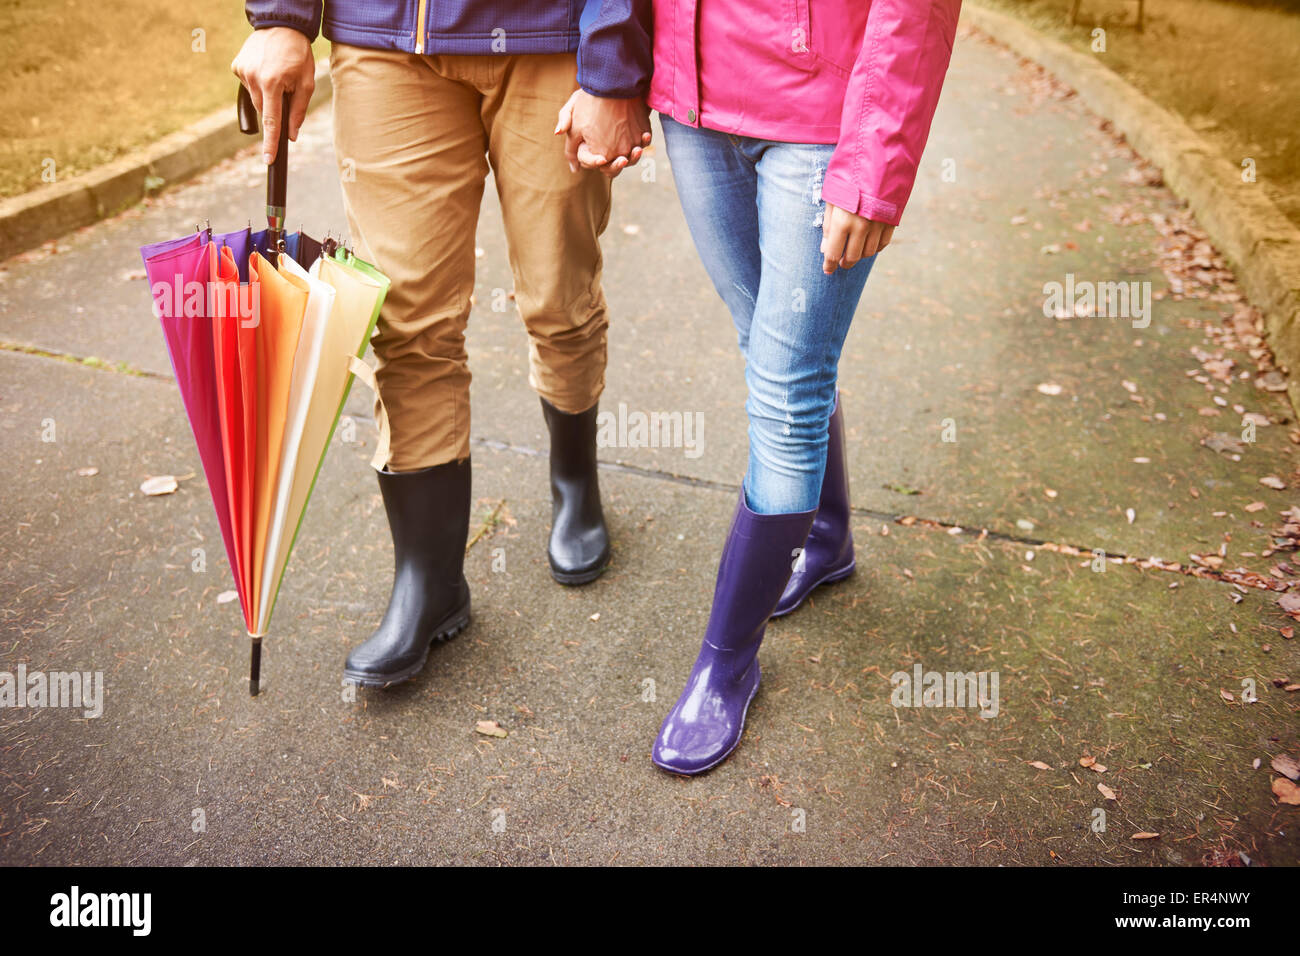 We are prepared for the autumn weather. Debica, Poland - Stock Image